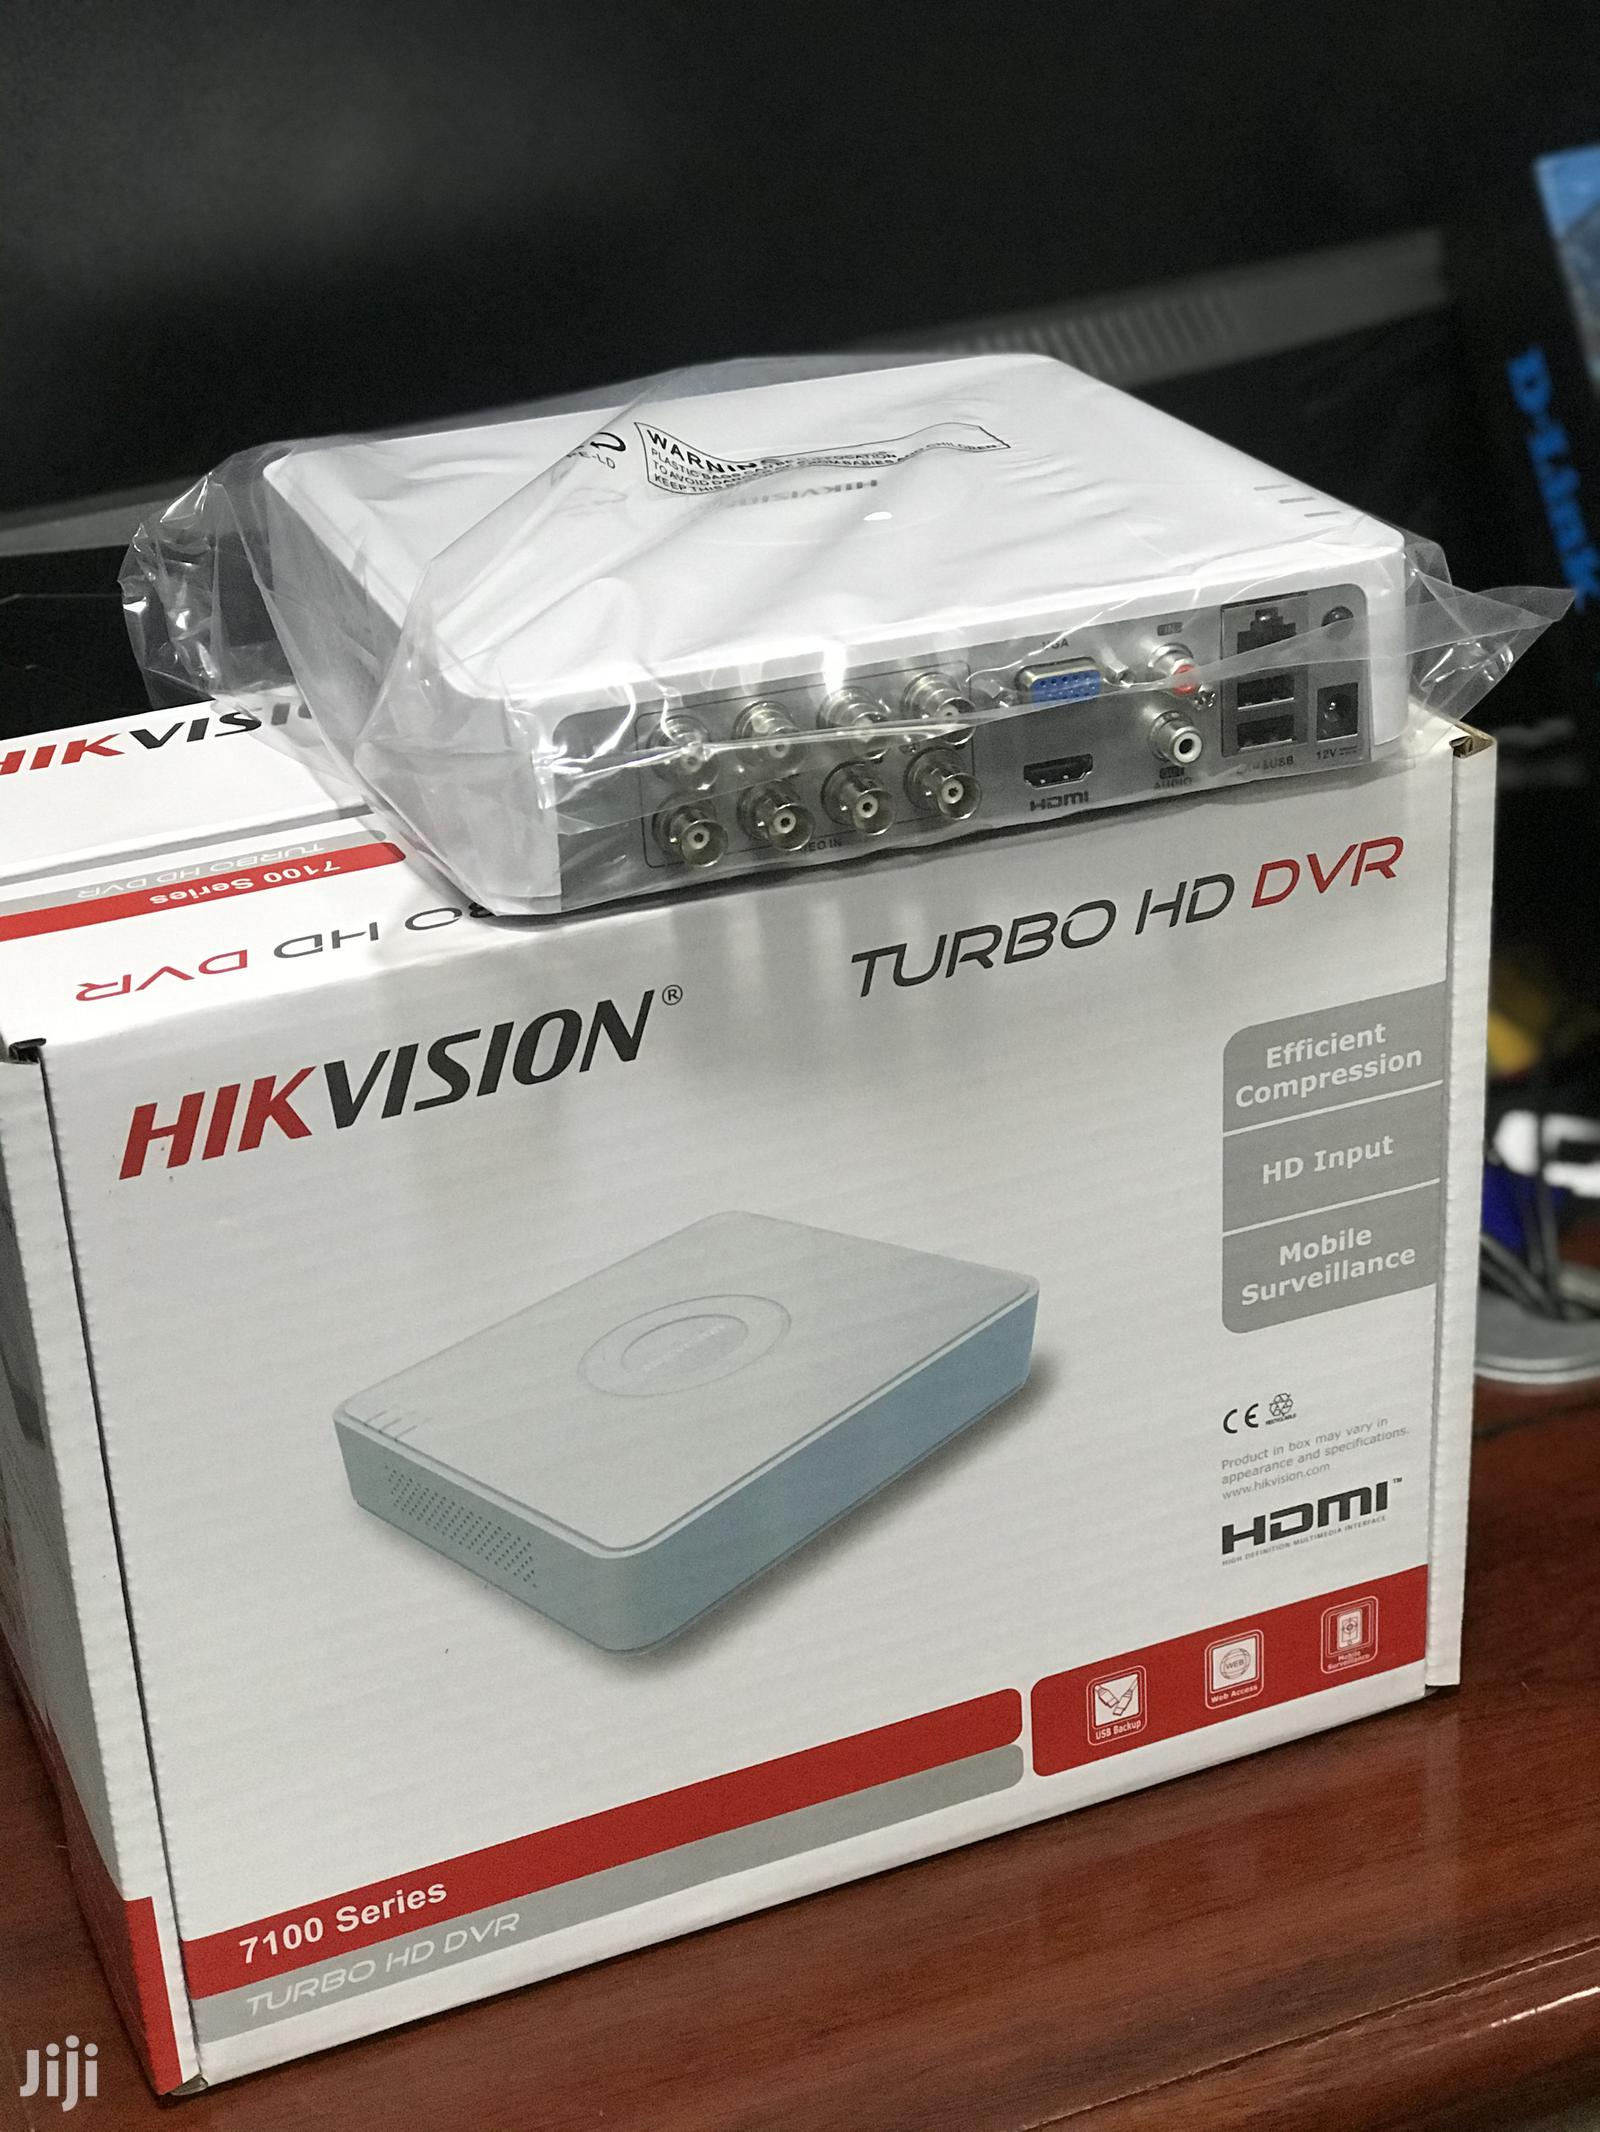 Hikvision DS-7108HQHI-K1 Is An 8-channel   Security & Surveillance for sale in Bubuashie, Greater Accra, Ghana